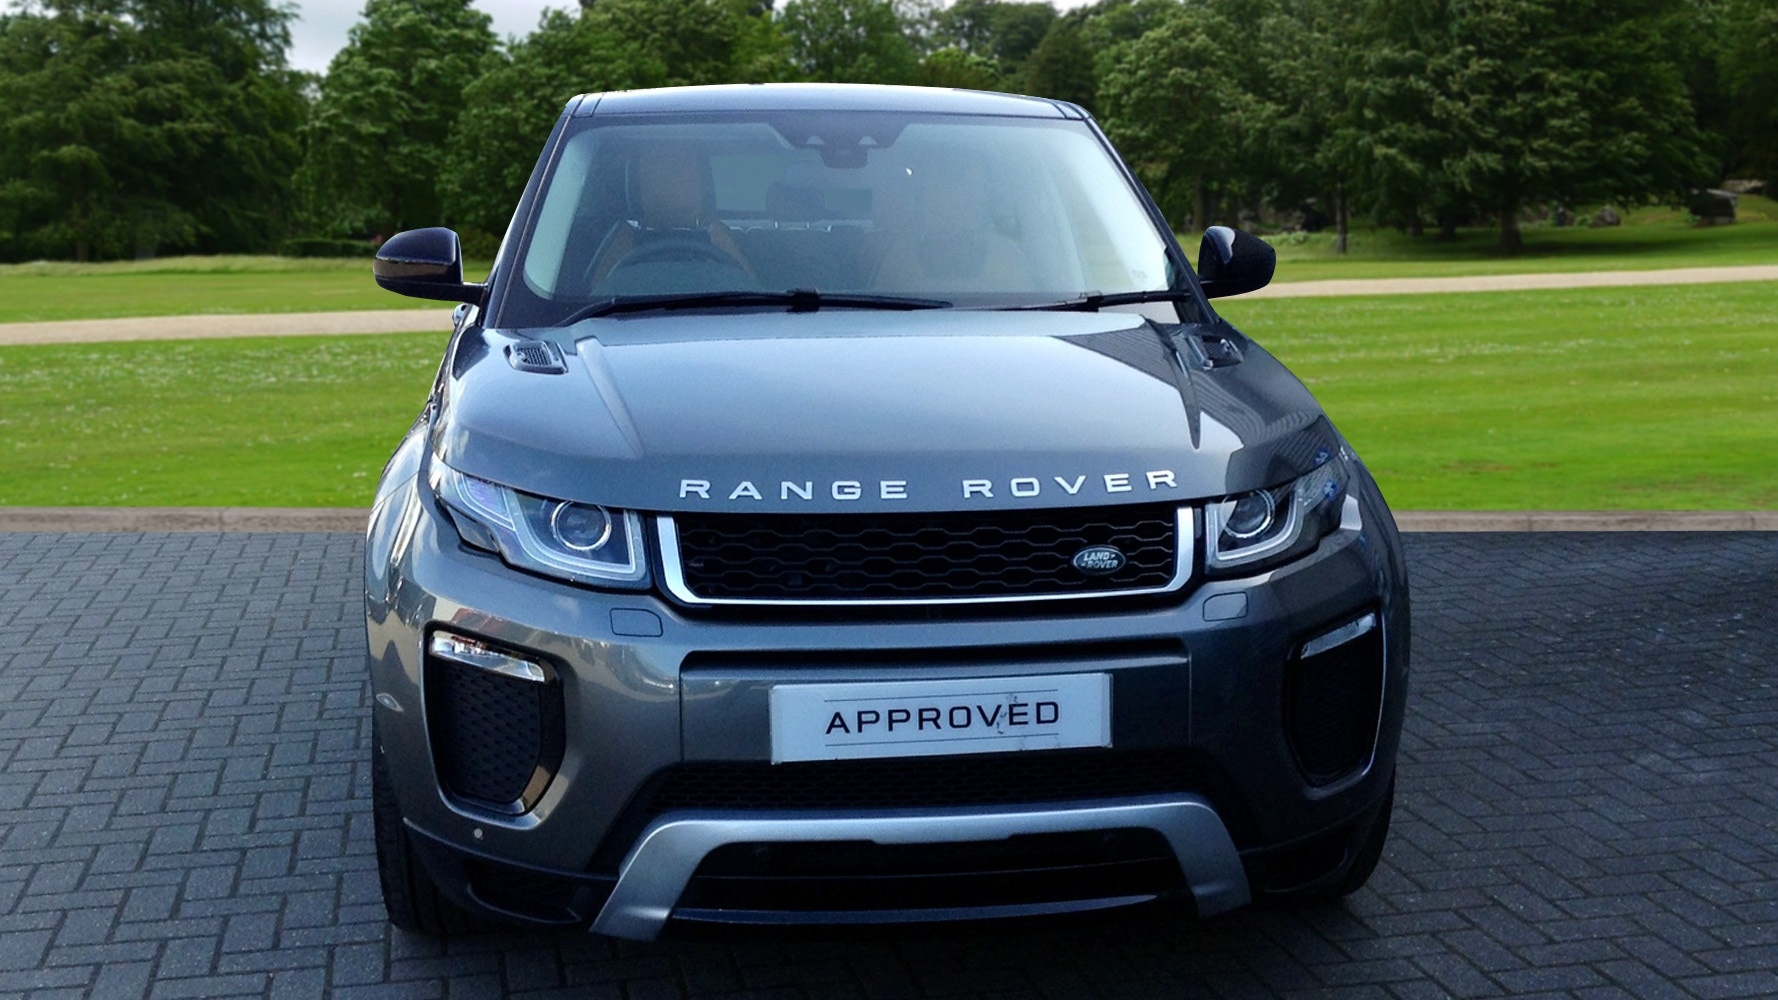 Used corris grey land rover range rover sport for sale surrey - Thumbnail 7